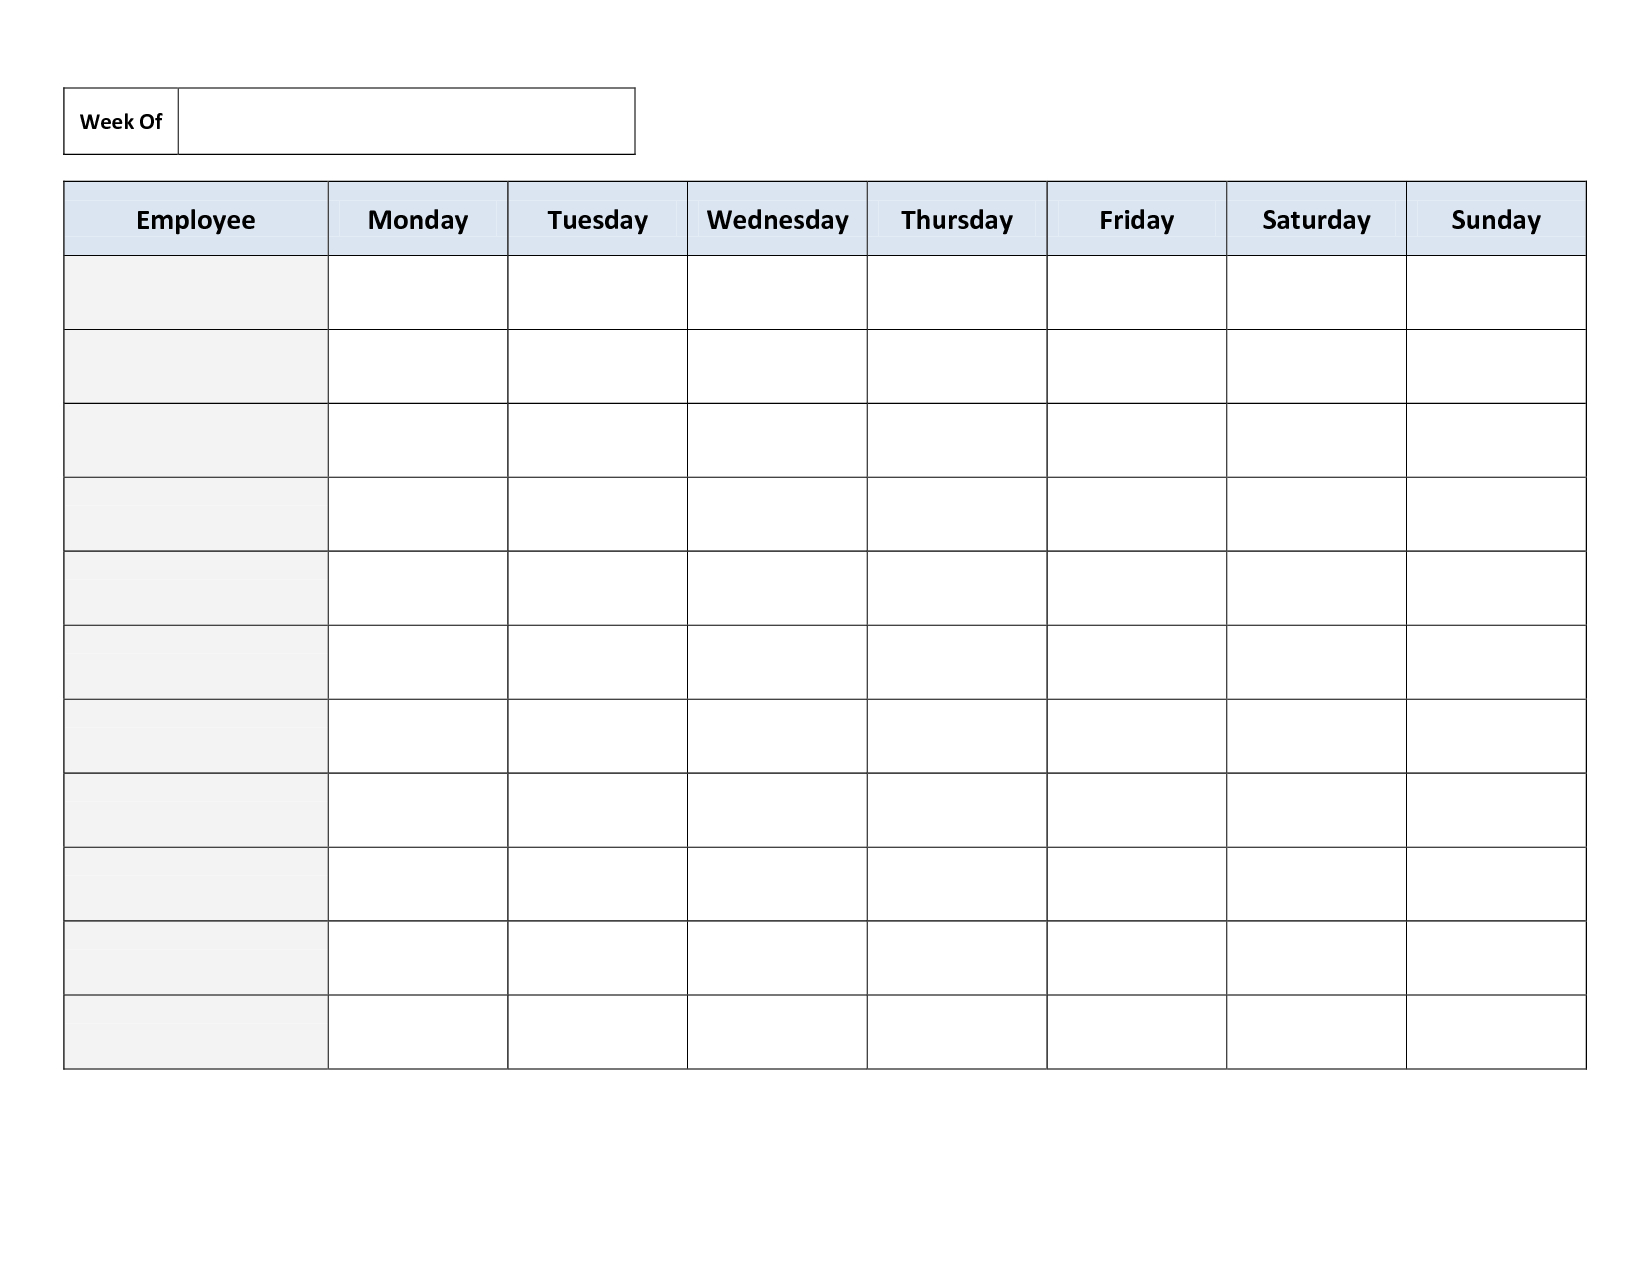 Weekly Employee Work Schedule Template. Free Blank Schedule.pdf - Free Printable Blank Weekly Schedule